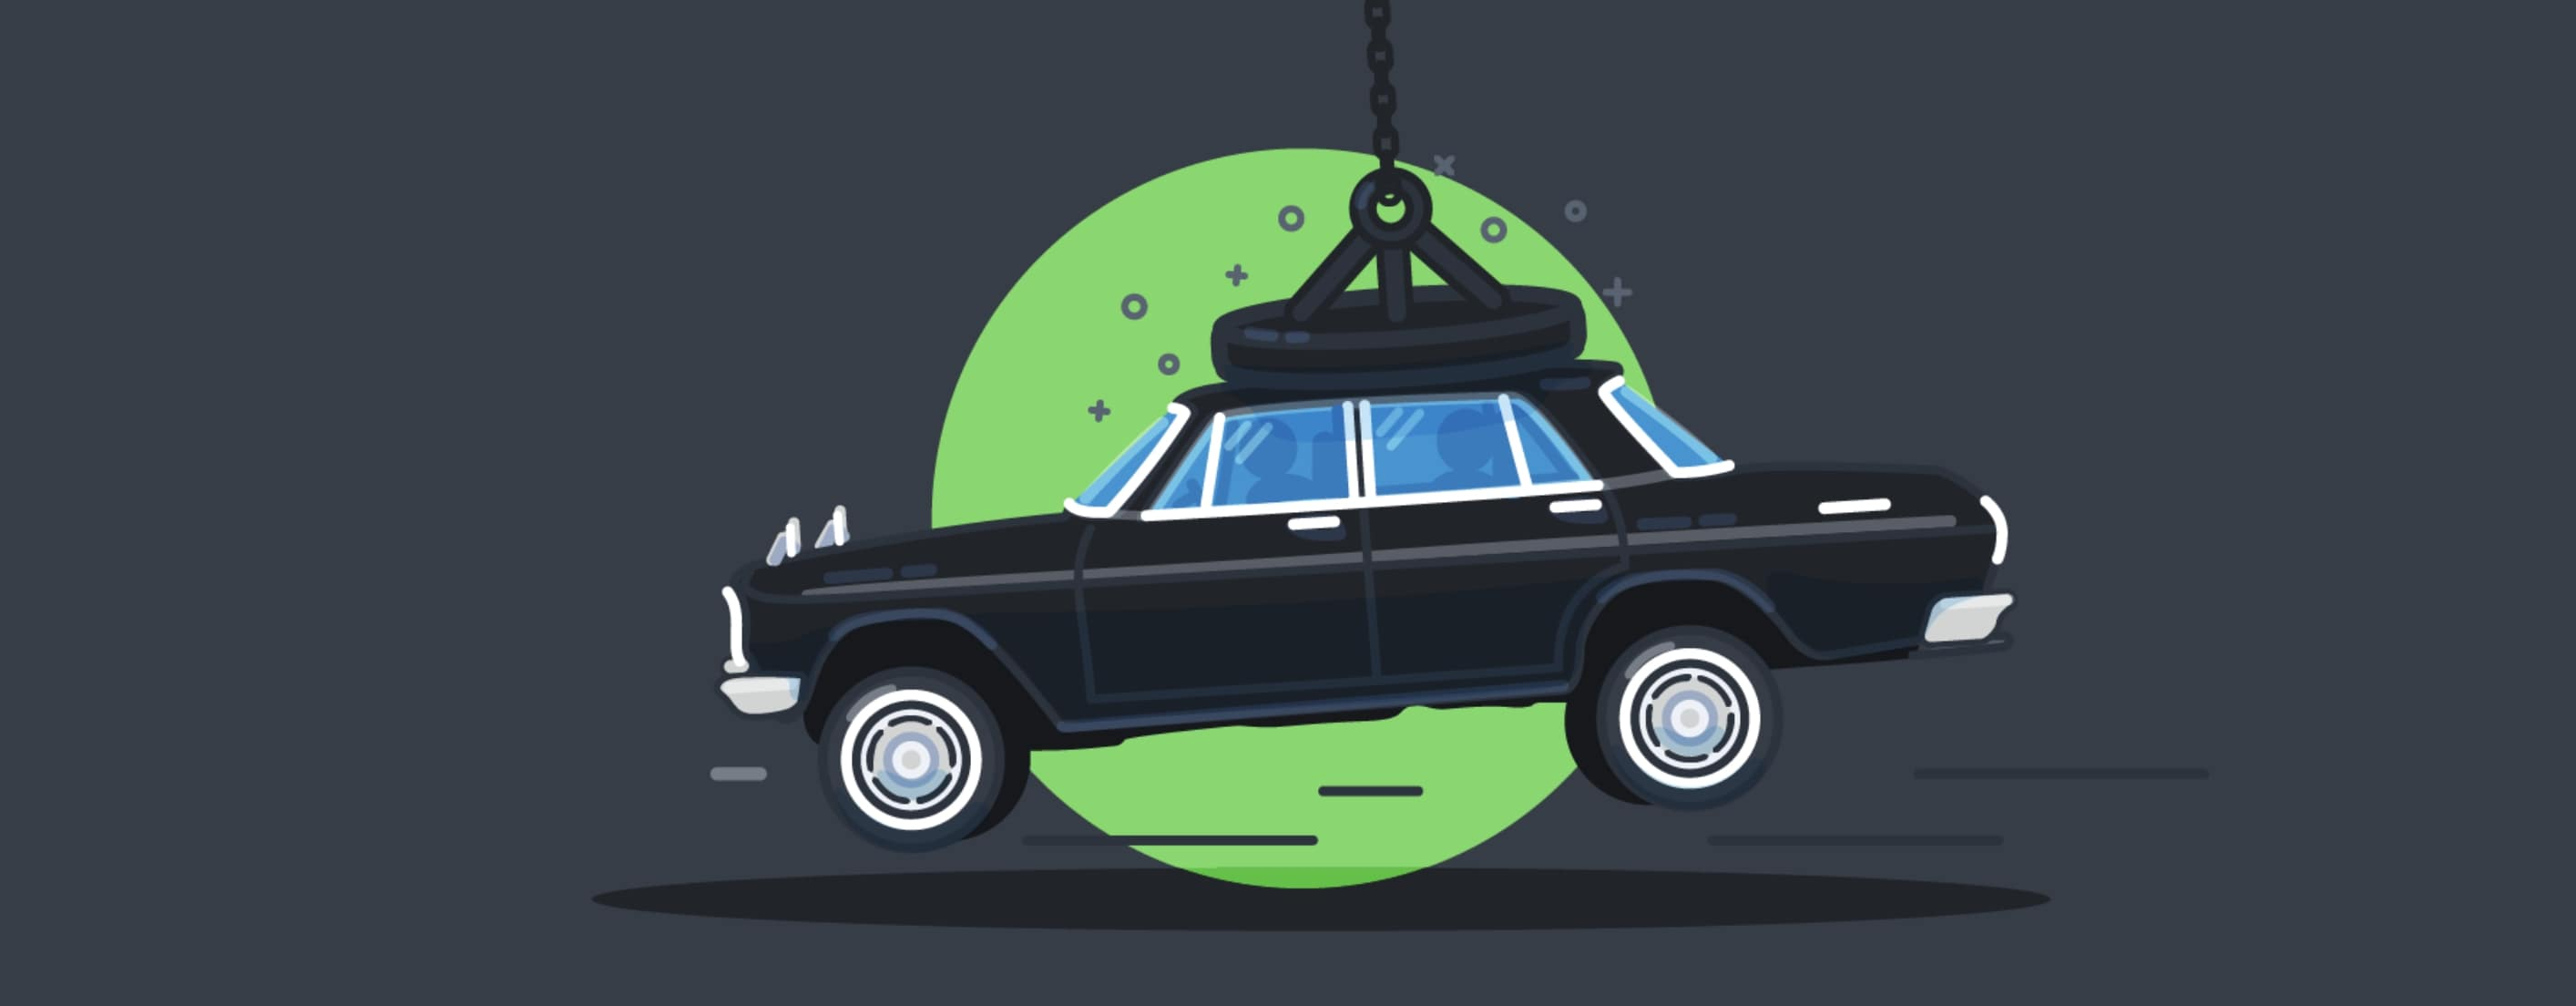 car - header image for 20 Proven Tactics for Automotive Lead Generation